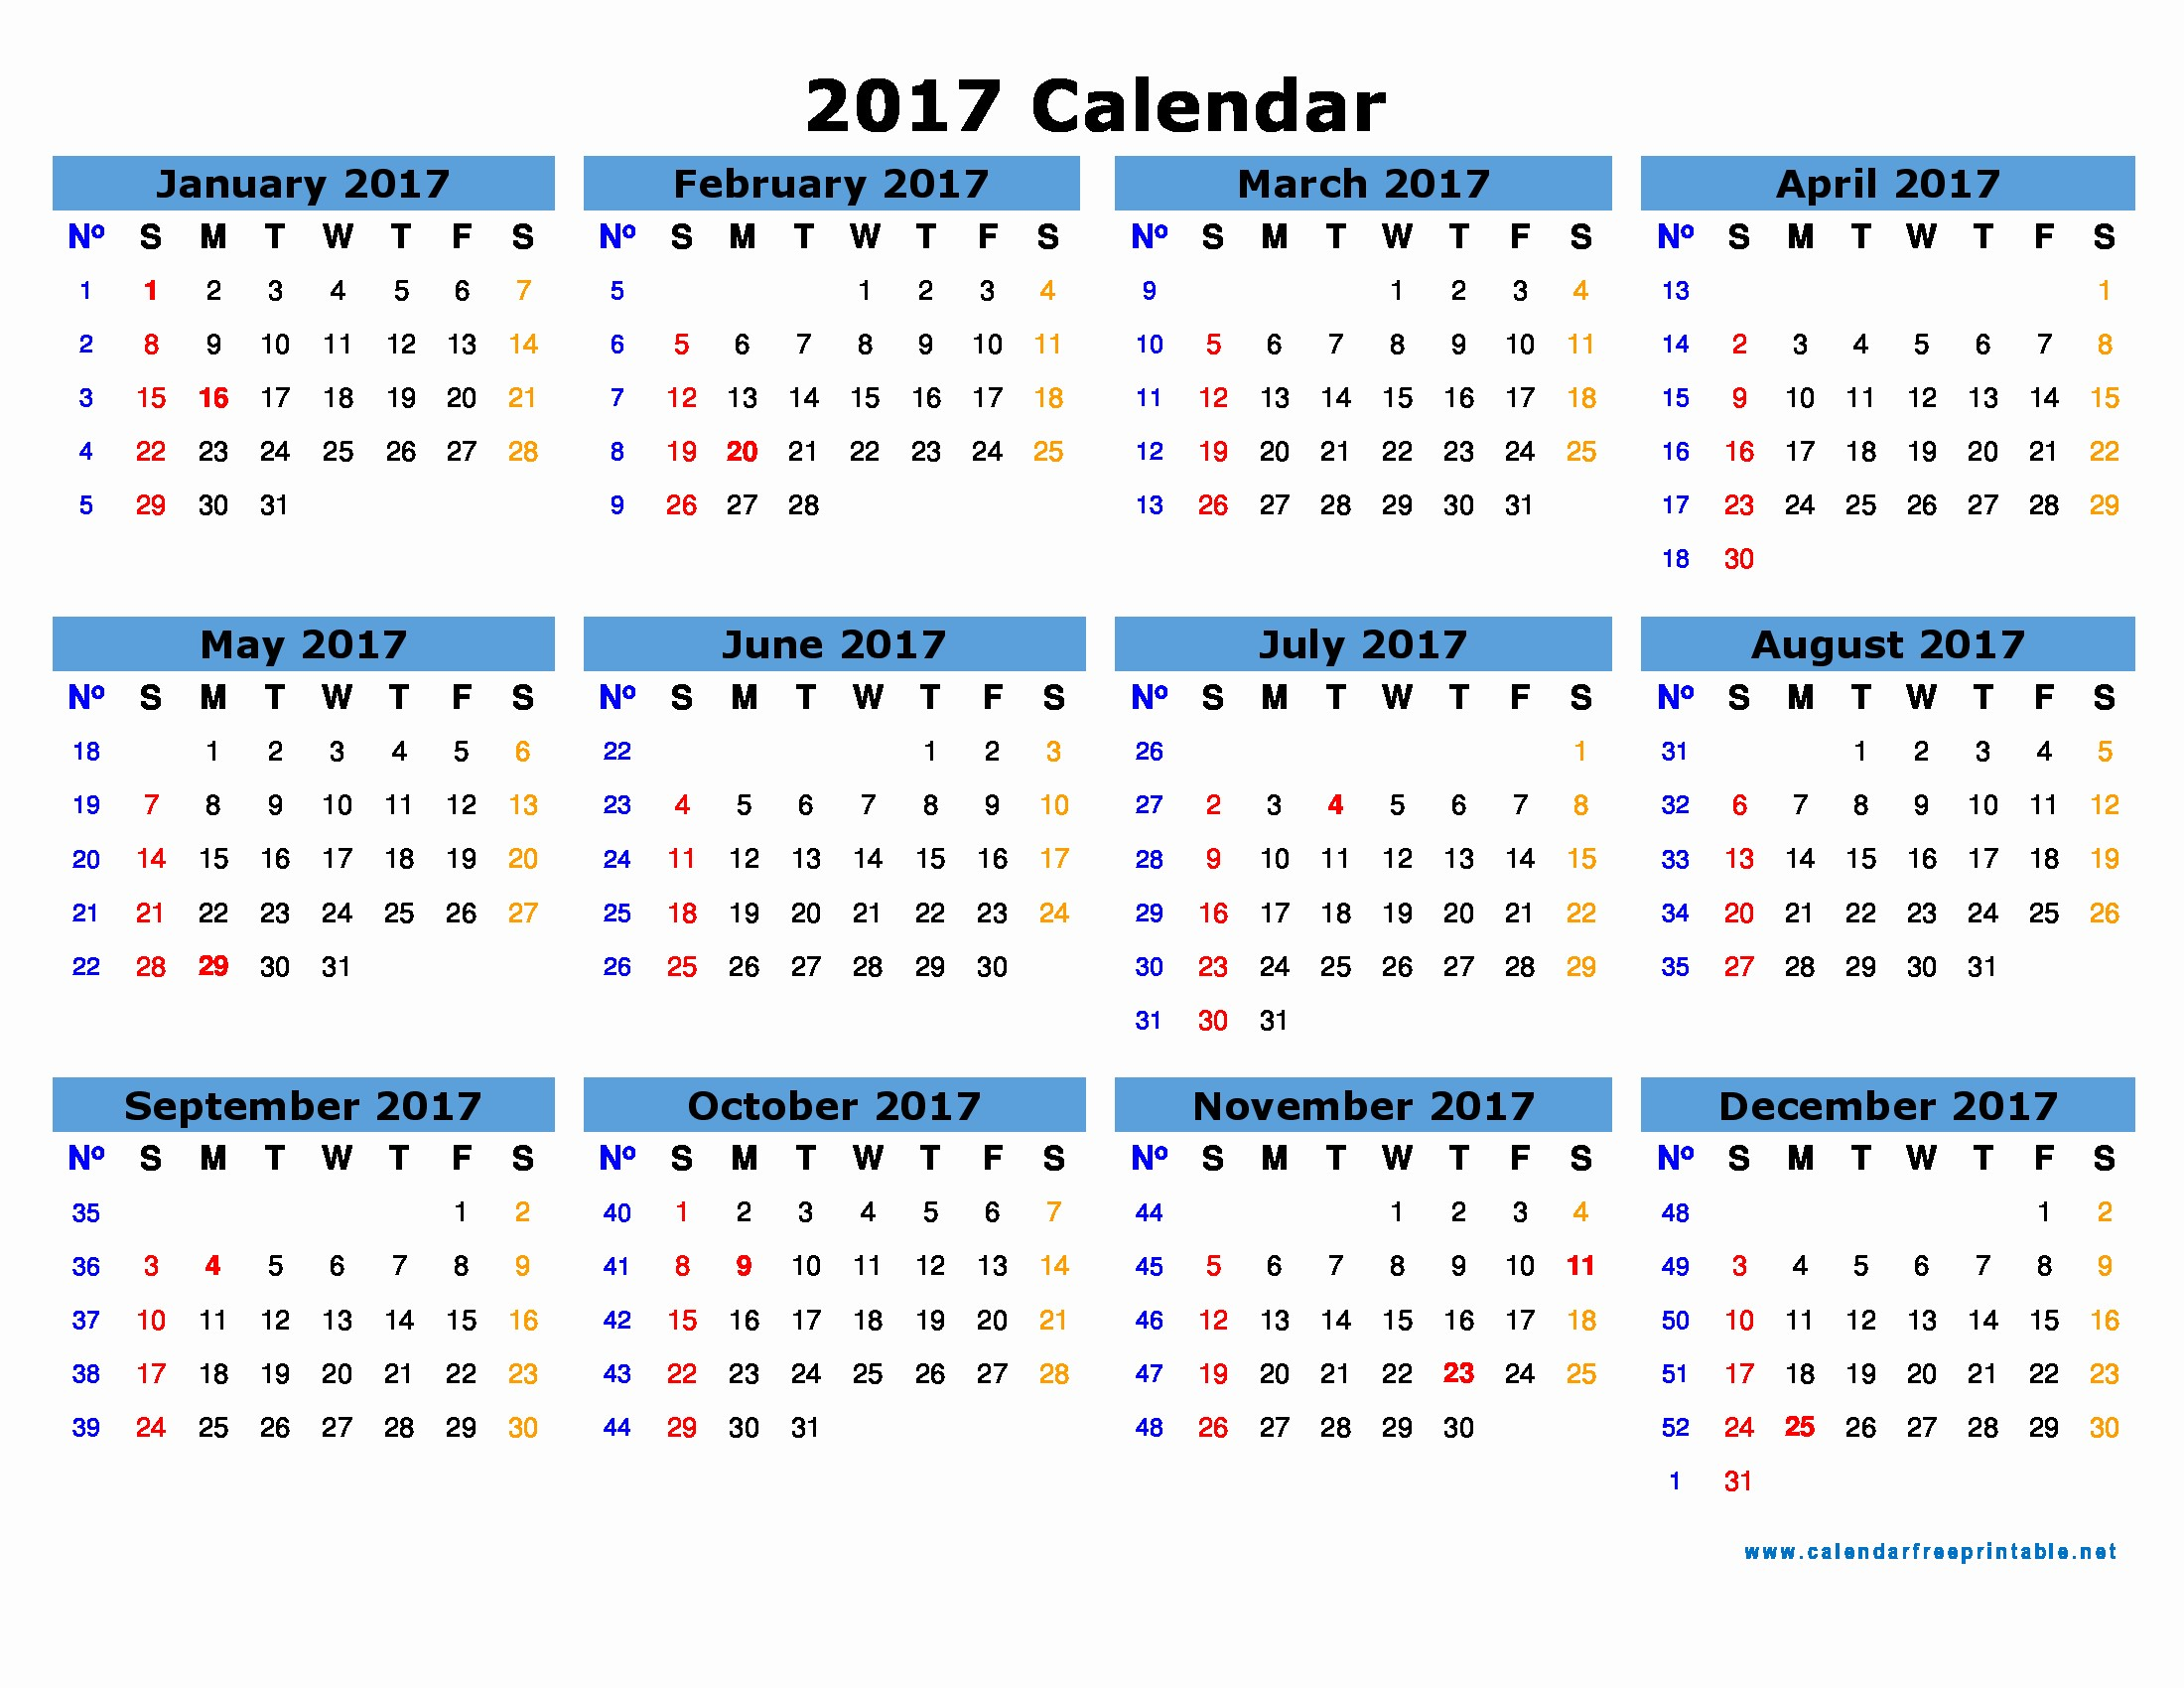 2017 Calendar with Holidays Template Unique Free Calendar Template 2017